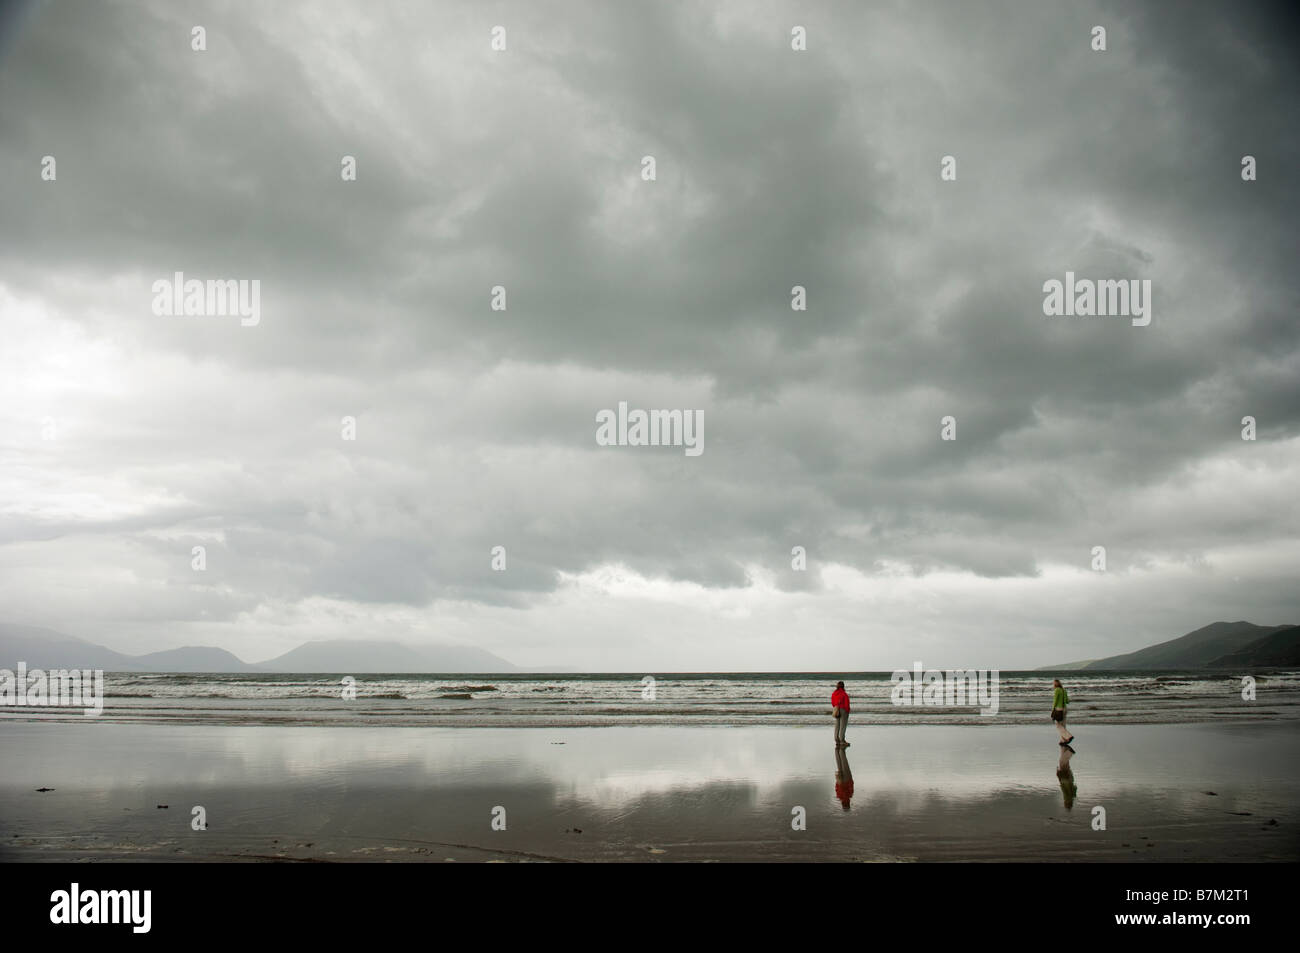 Two people on a beach in Dingle Penninsula, West of Ireland - Stock Image